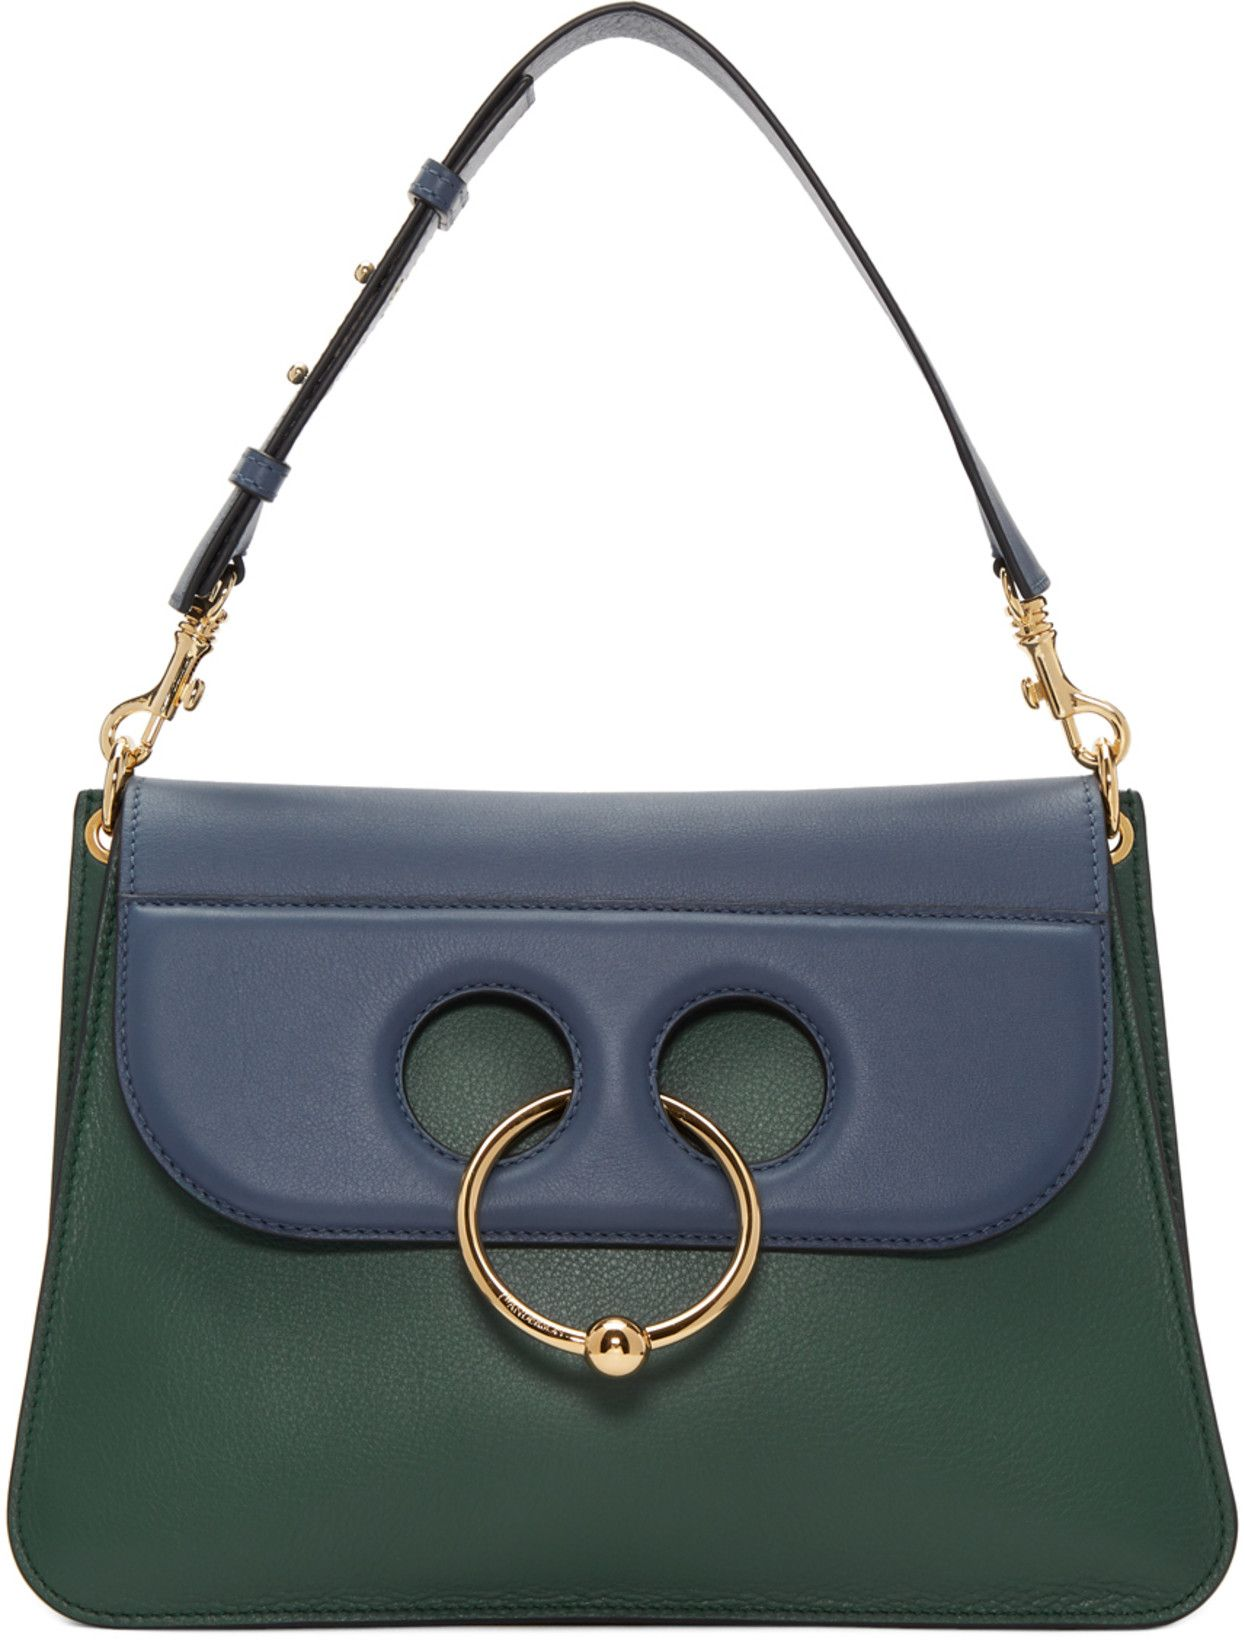 9aeb7f0a1 JW Anderson - Green & Blue Medium Pierce Bag | Leather Handbags ...